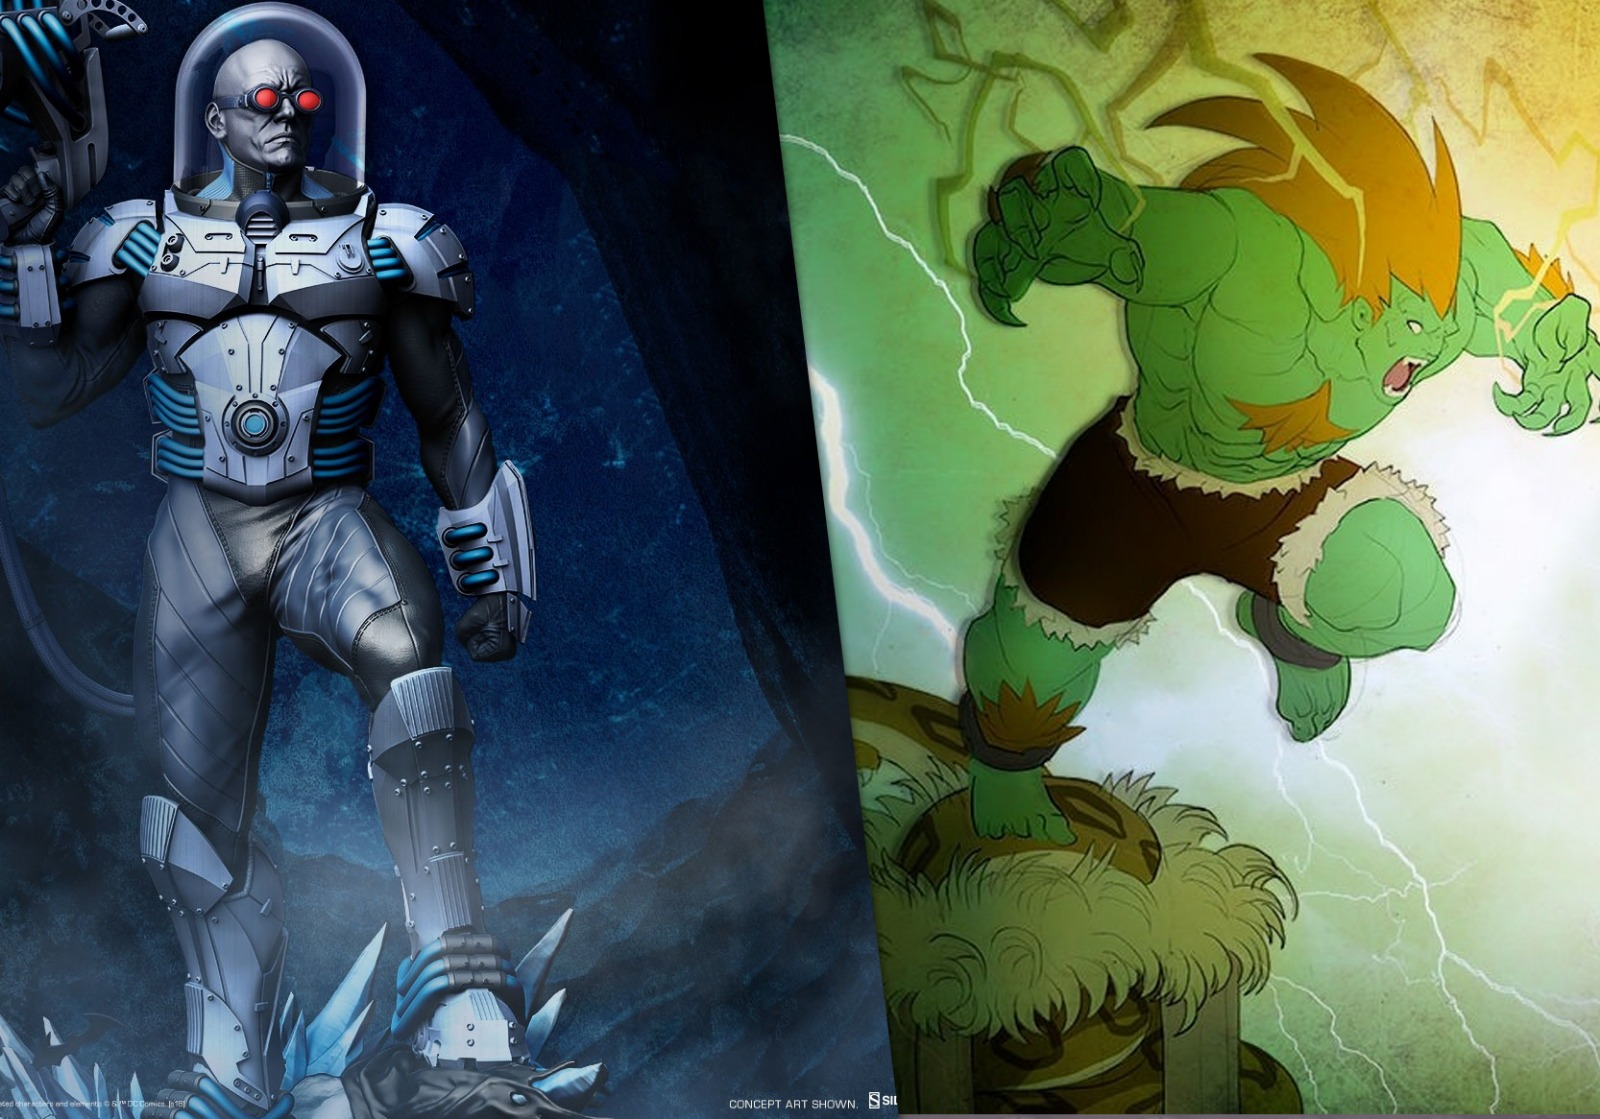 12 Days of Sideshow Event Devam Ediyor: MR. FREEZE ve BLANKA!